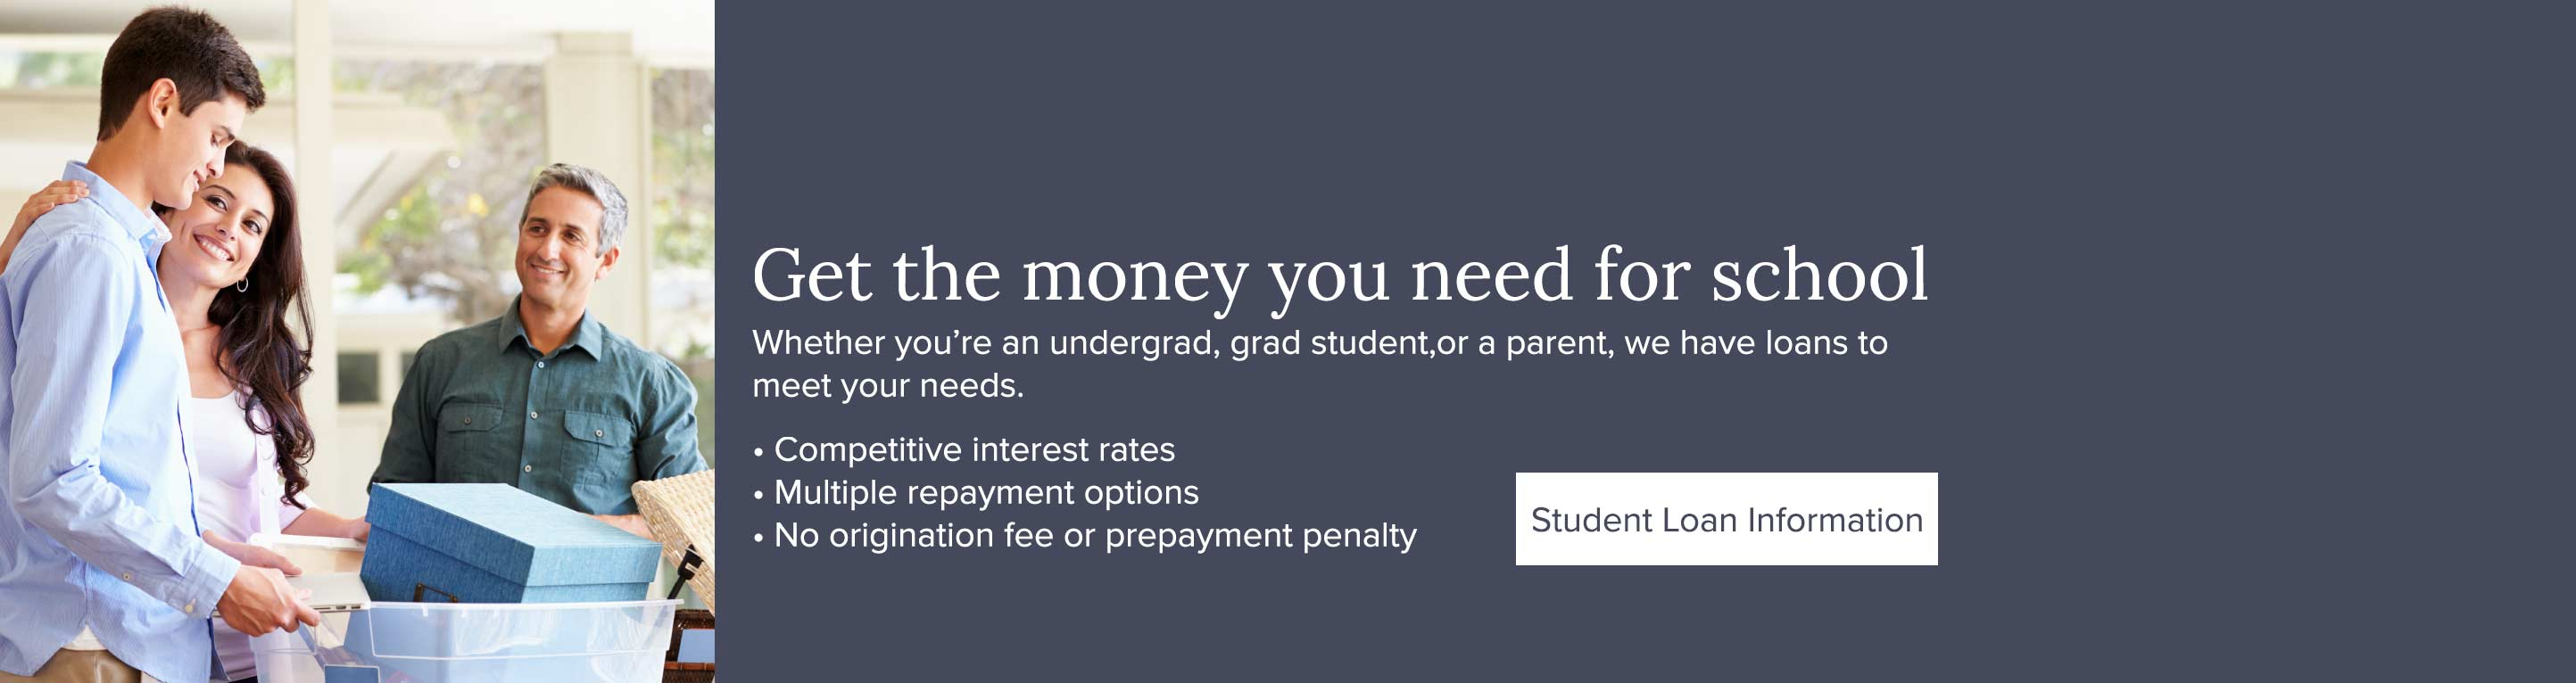 Get the money you need for school. Whether you're an undergrad, grad student,or a parent, we have loans to meet your needs. Competitive interest rates, Multiple repayment options, No origination fee or prepayment penalty. Student Loan Information